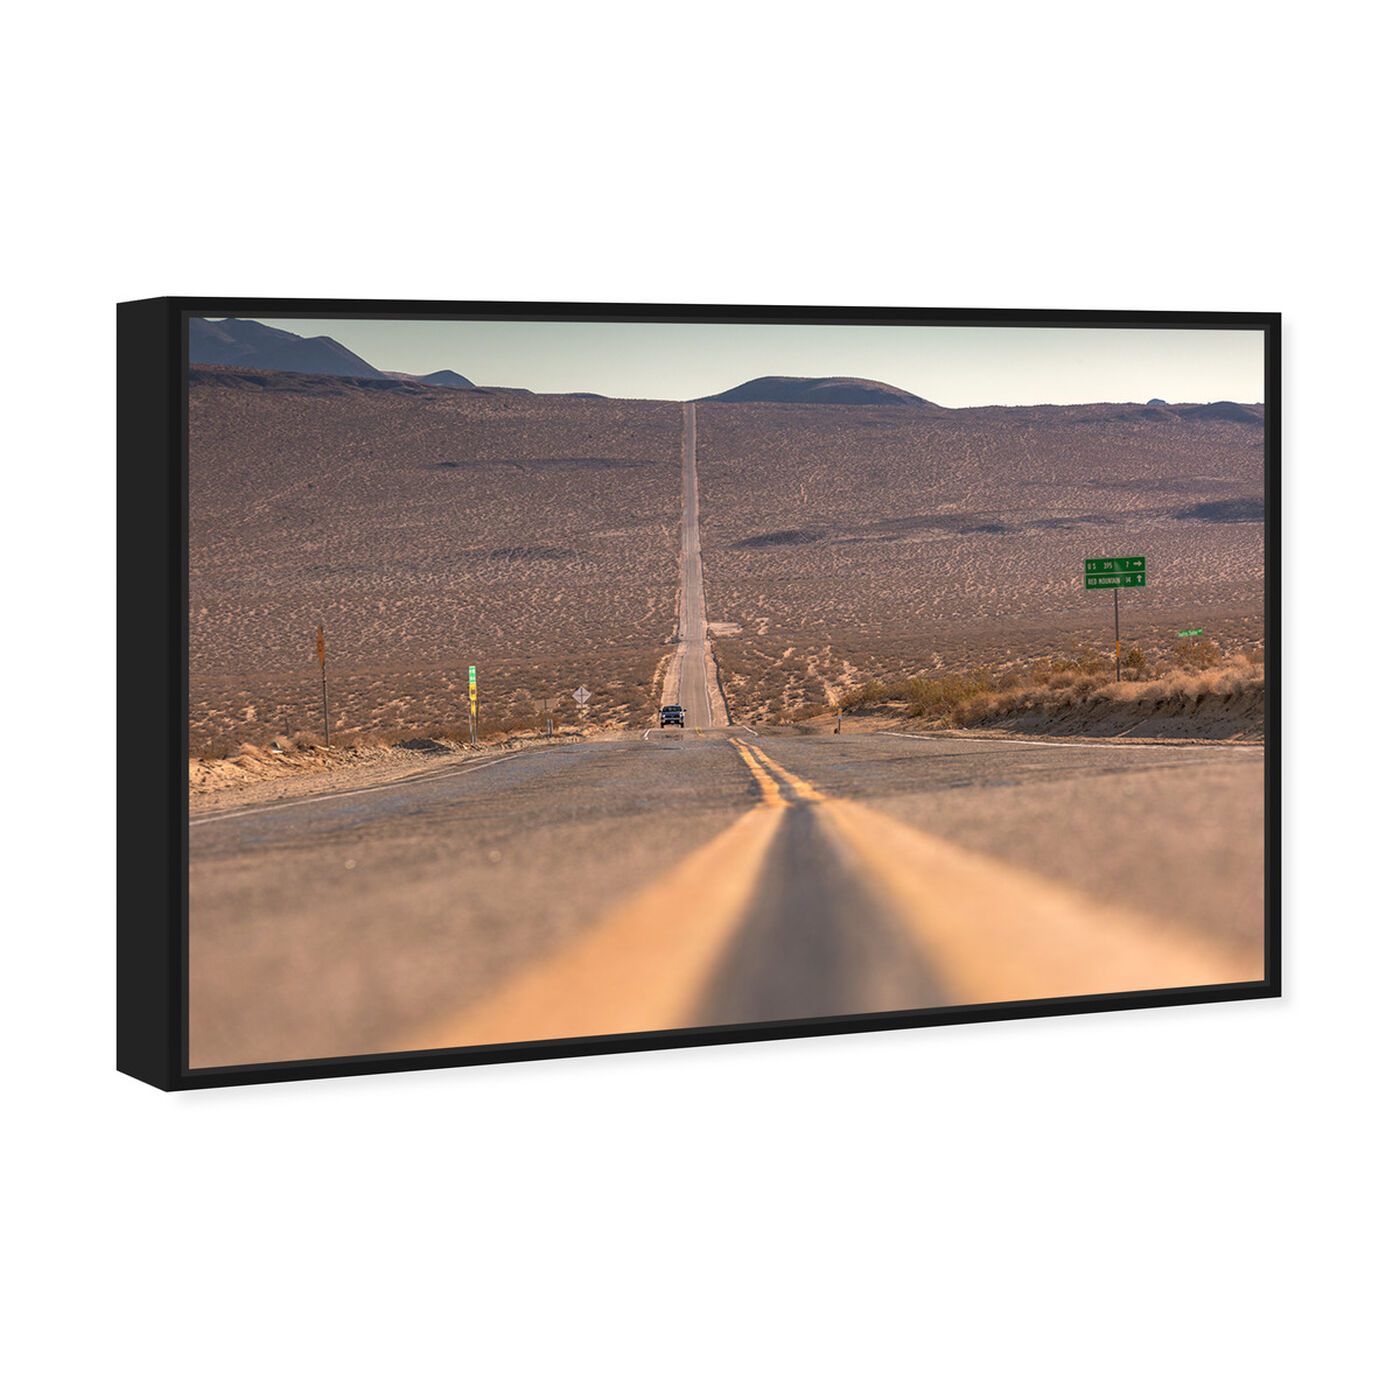 Angled view of Curro Cardenal - American Road featuring nature and landscape and desert landscapes art.